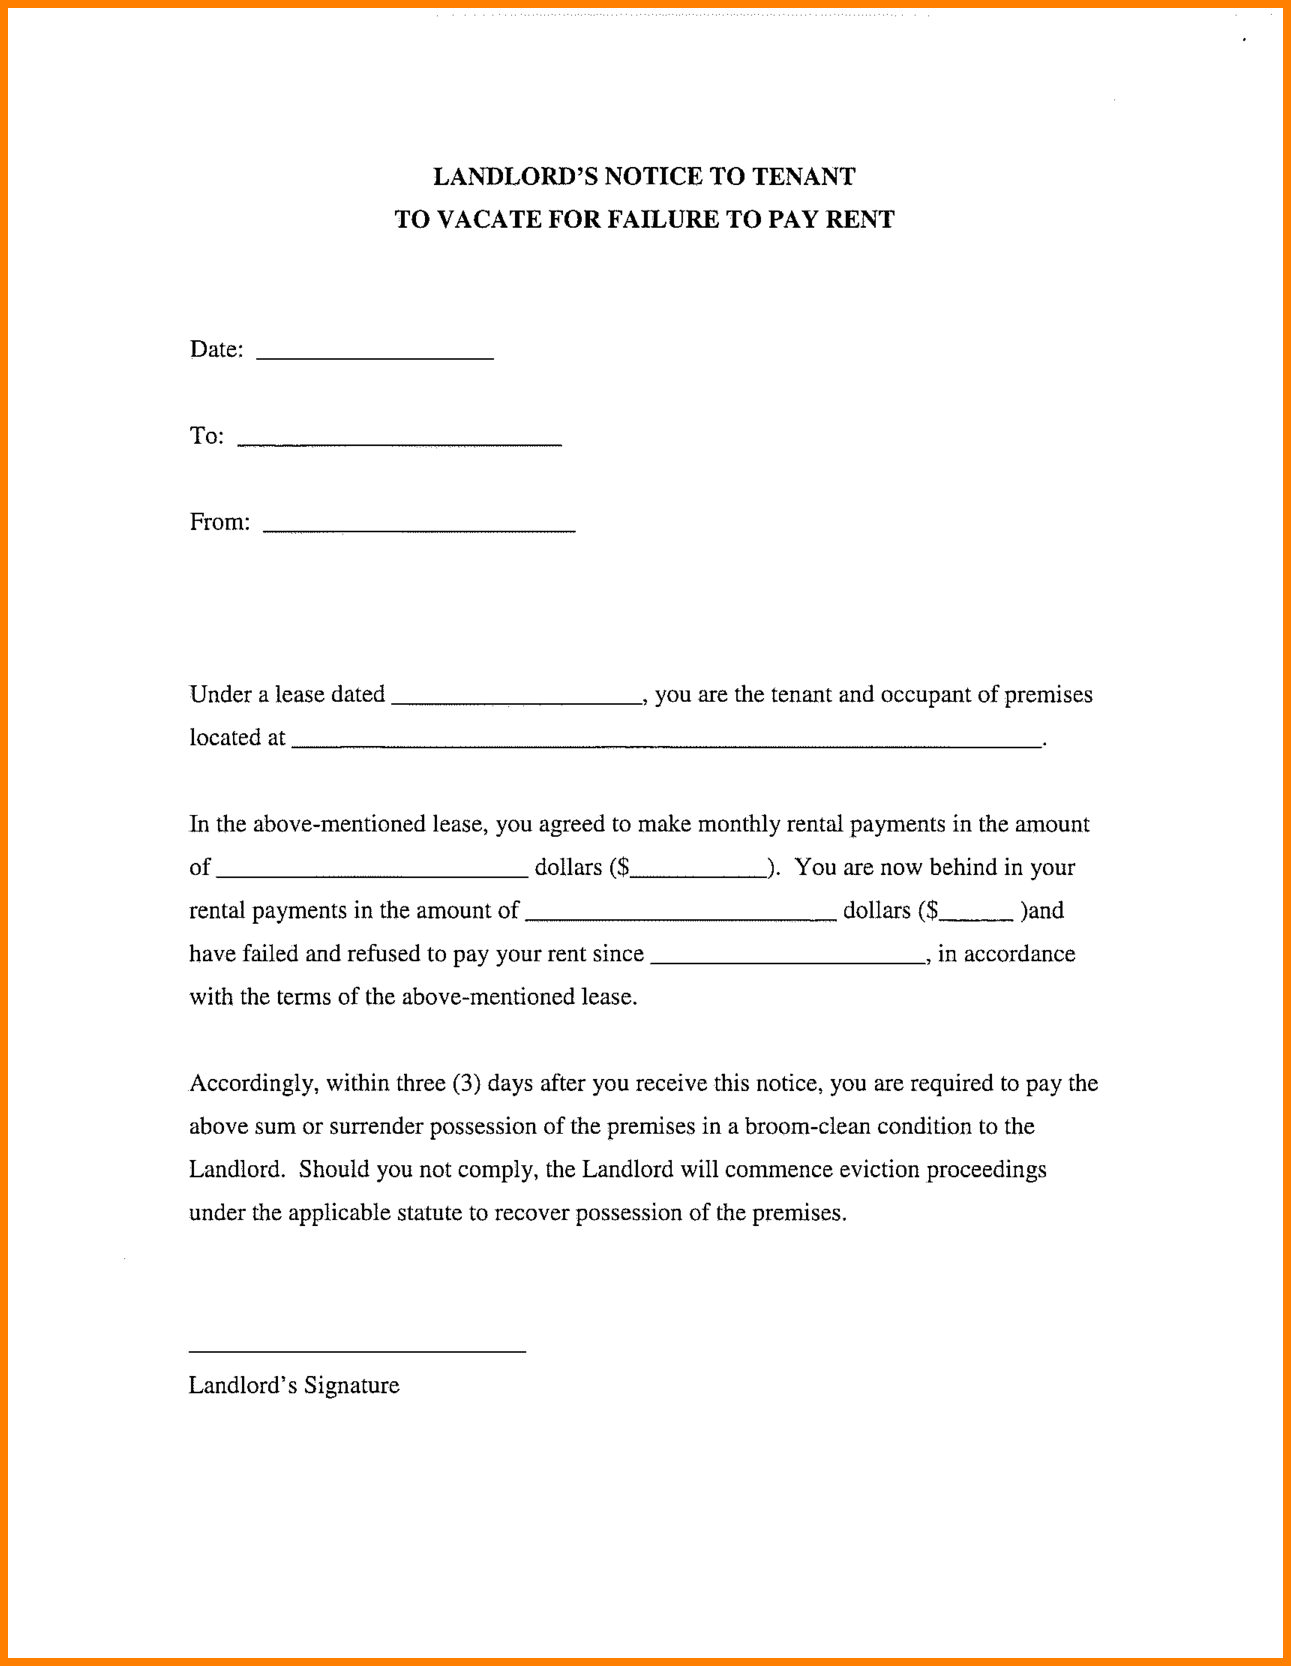 certification letter rental from landlord tenant Being a